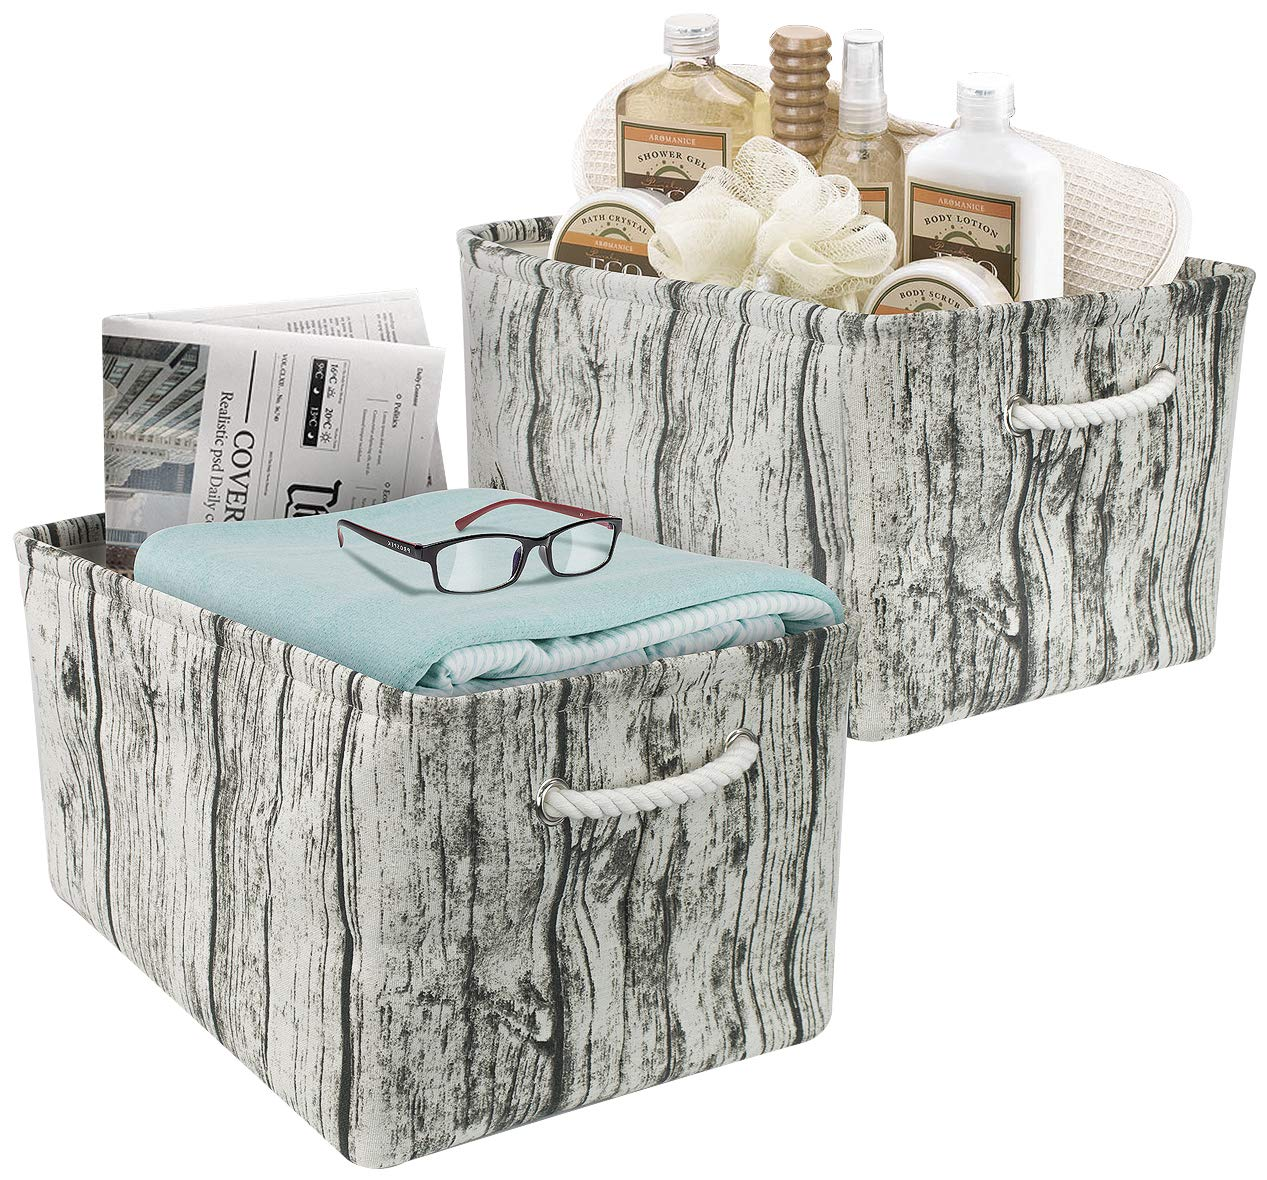 Sorbus Tree Stump Basket Bin Storage Set, Rustic Rectangular Fabric Storage Bin Organizer Baskets with Portable Rope Handles for Nursery, Kids, Toys, Linens, Clothes, etc (Tree Bin - Large)